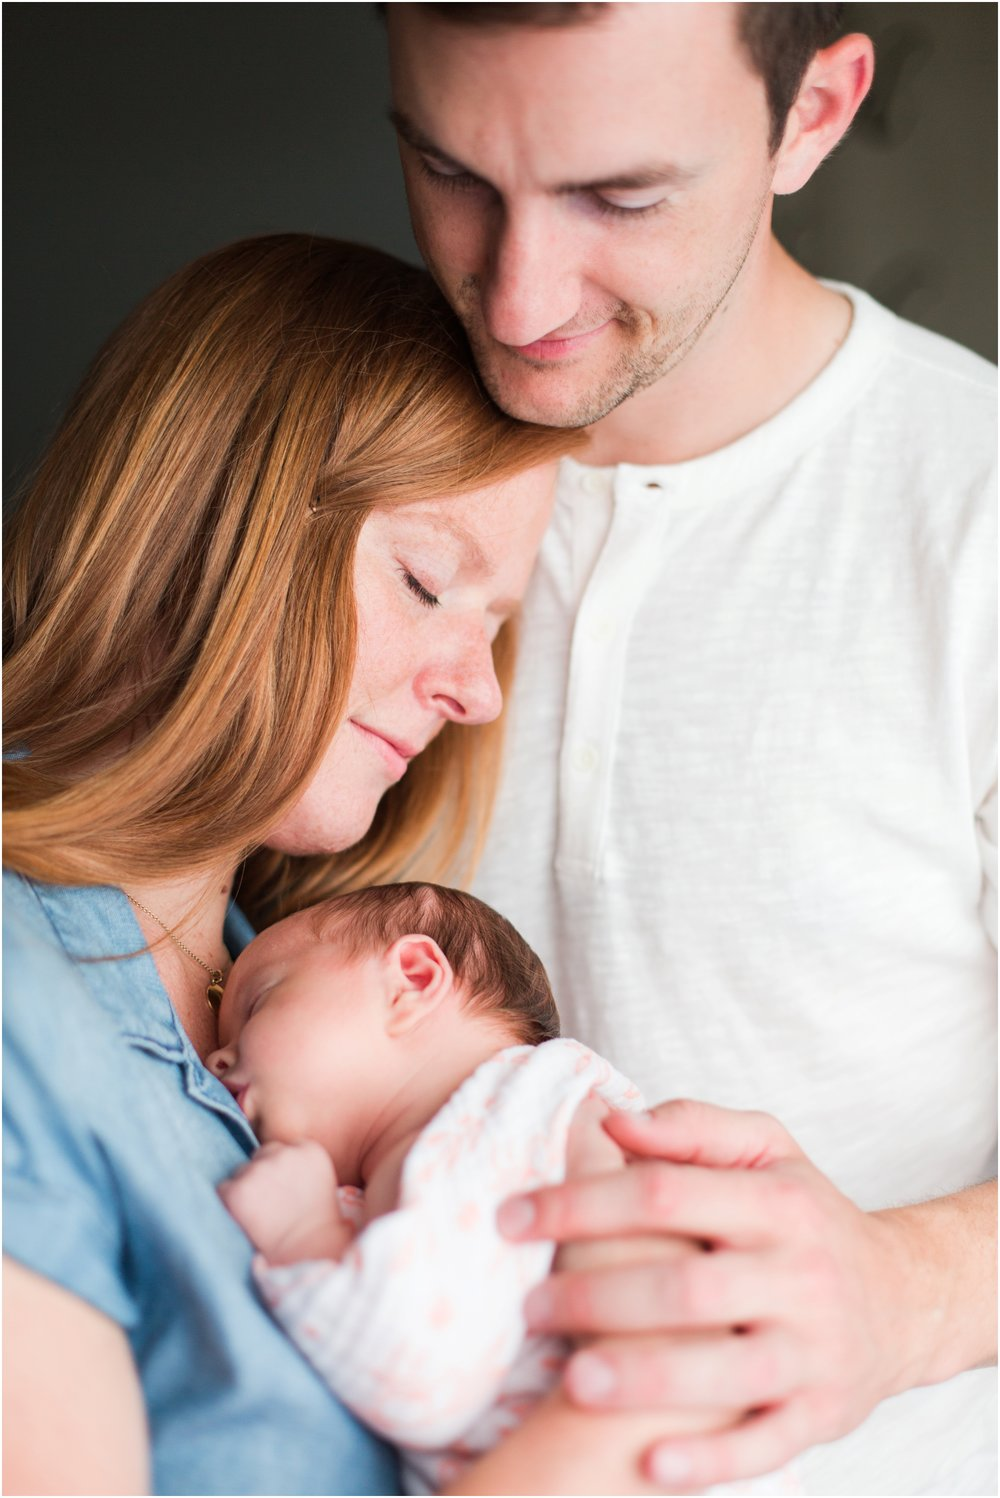 Seattle lifestyle newborn photos by Briana Calderon Photography based in the Greater Seattle & Tacoma, WA_0731.jpg